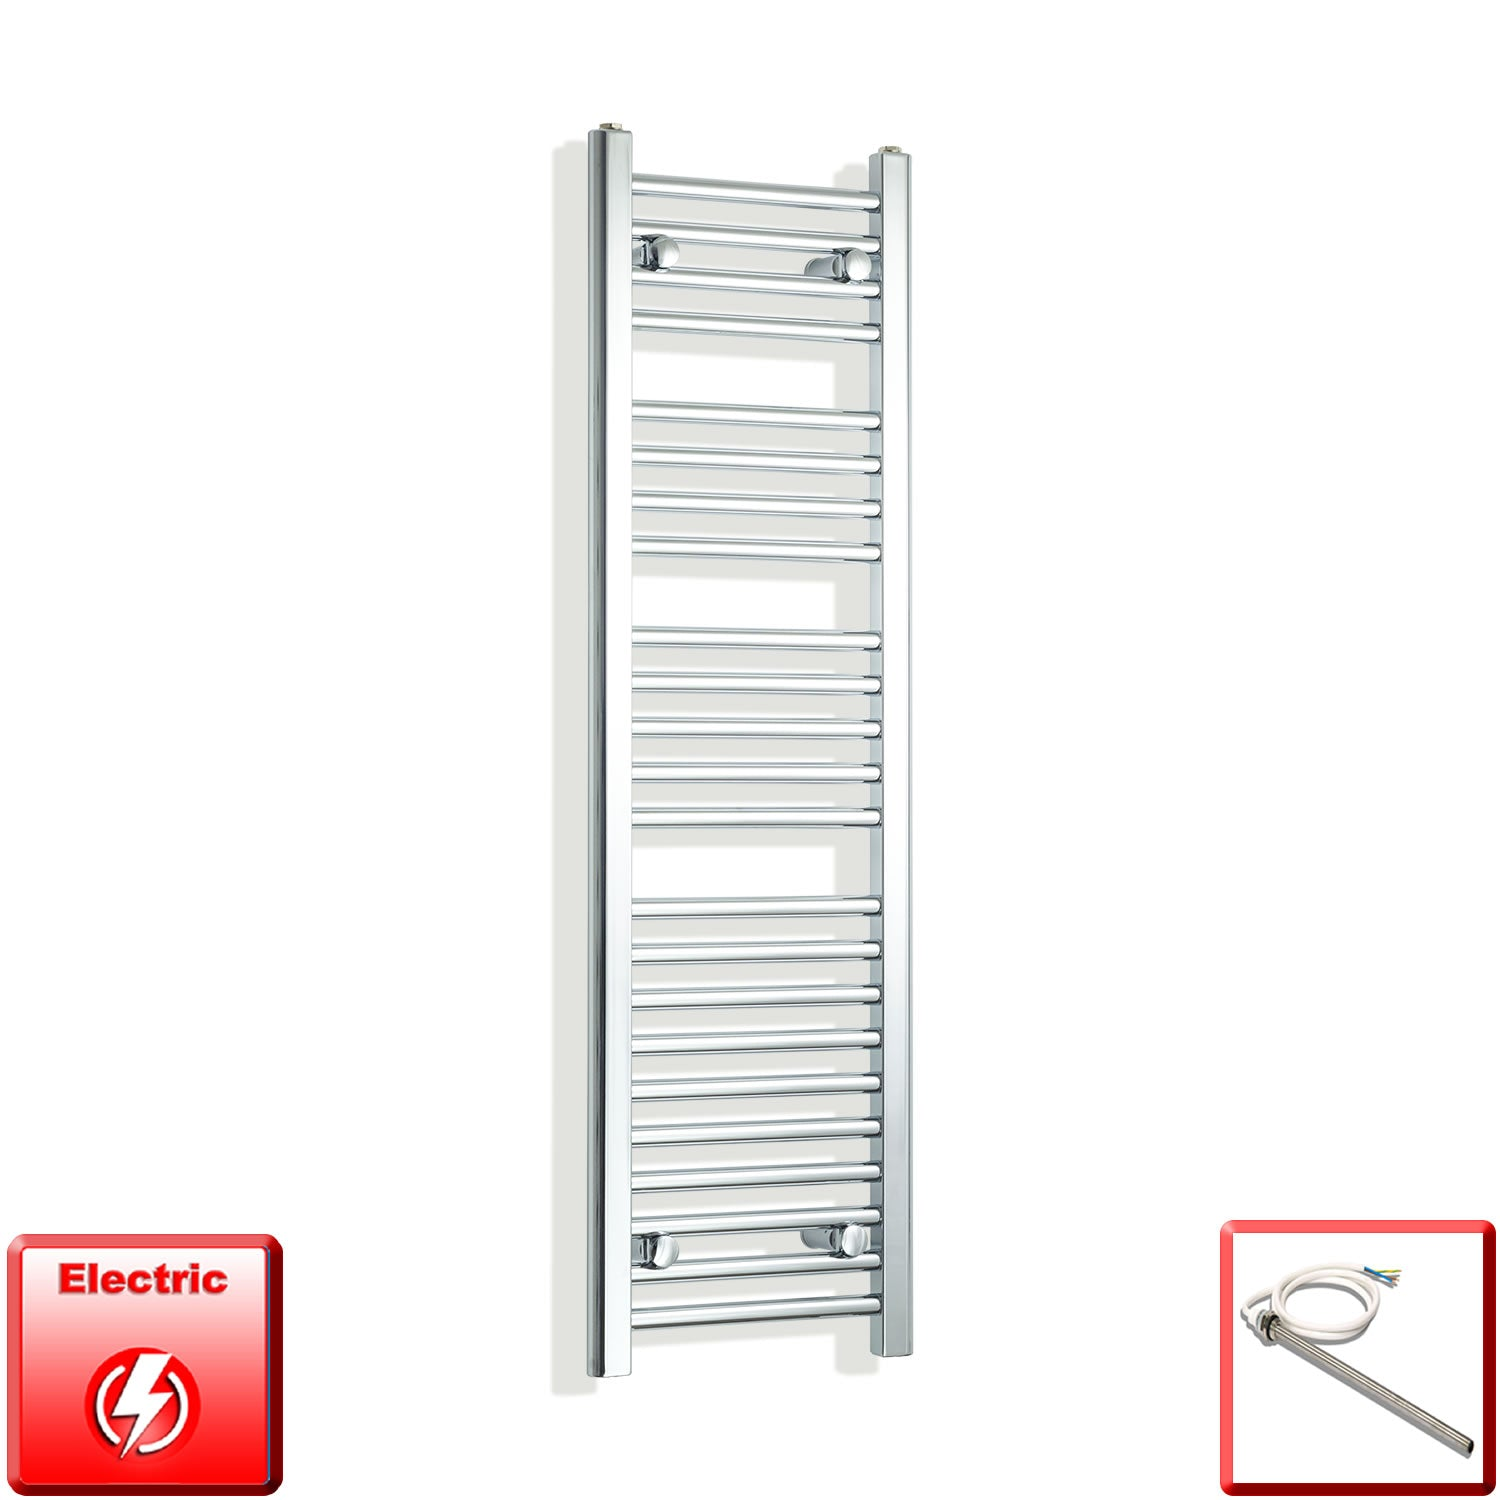 350mm Wide 1200mm High Pre-Filled Chrome Electric Towel Rail Radiator With Single Heat Element